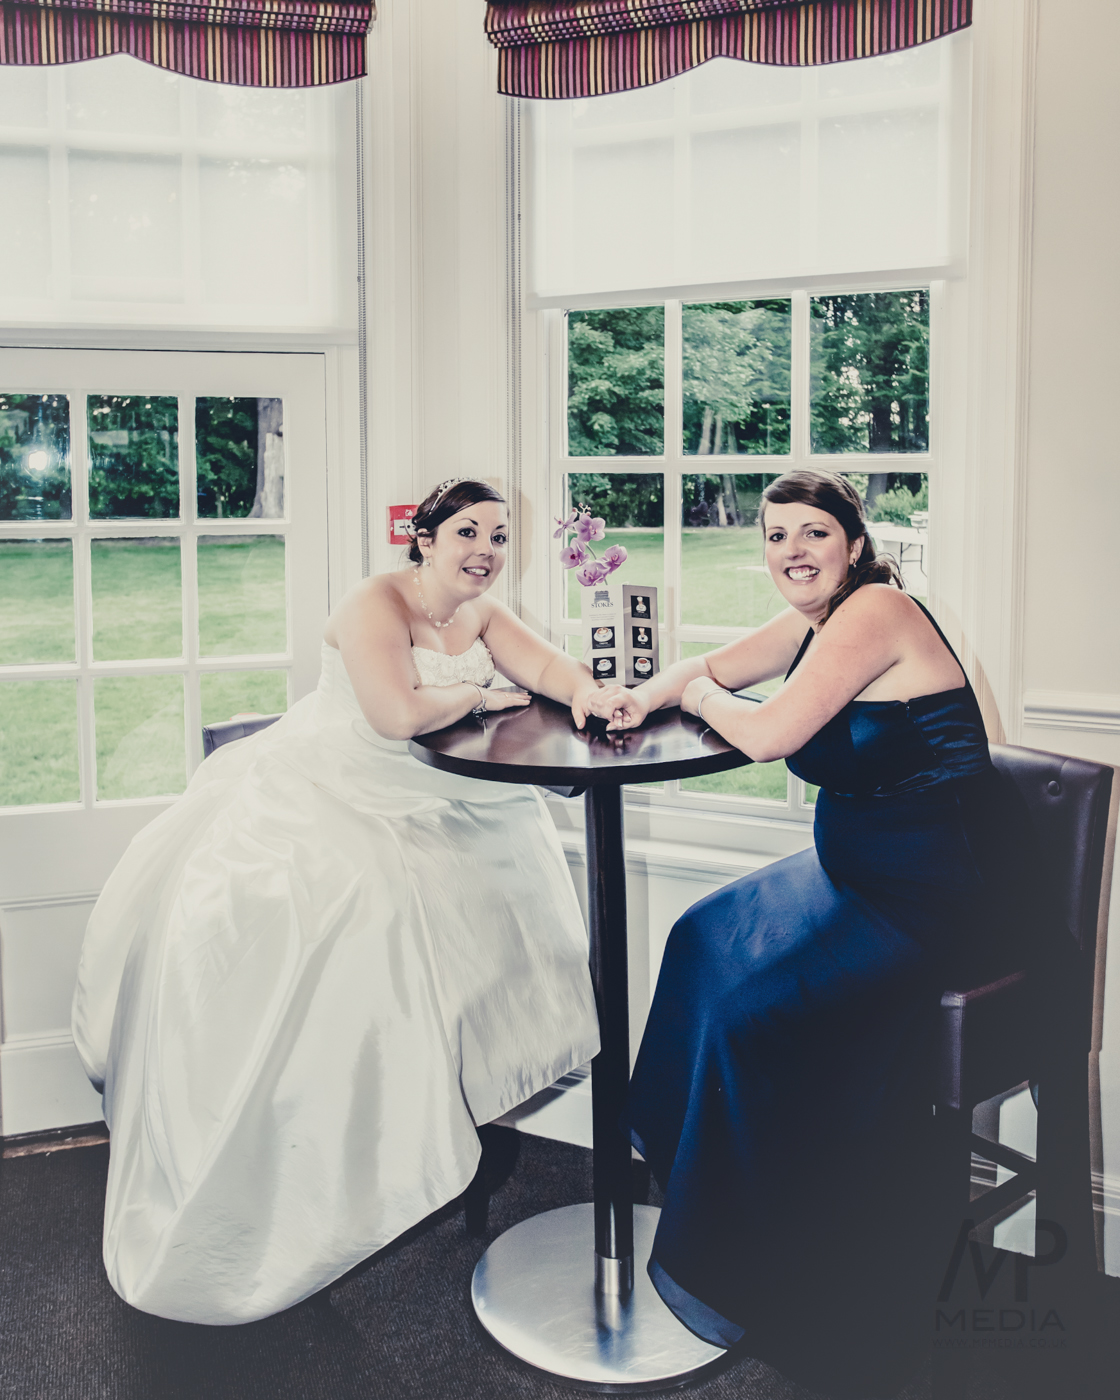 620 - Chris and Natalies Wedding (MAIN) - DO NOT SHARE THIS IMAGES ONLINE -1019.JPG